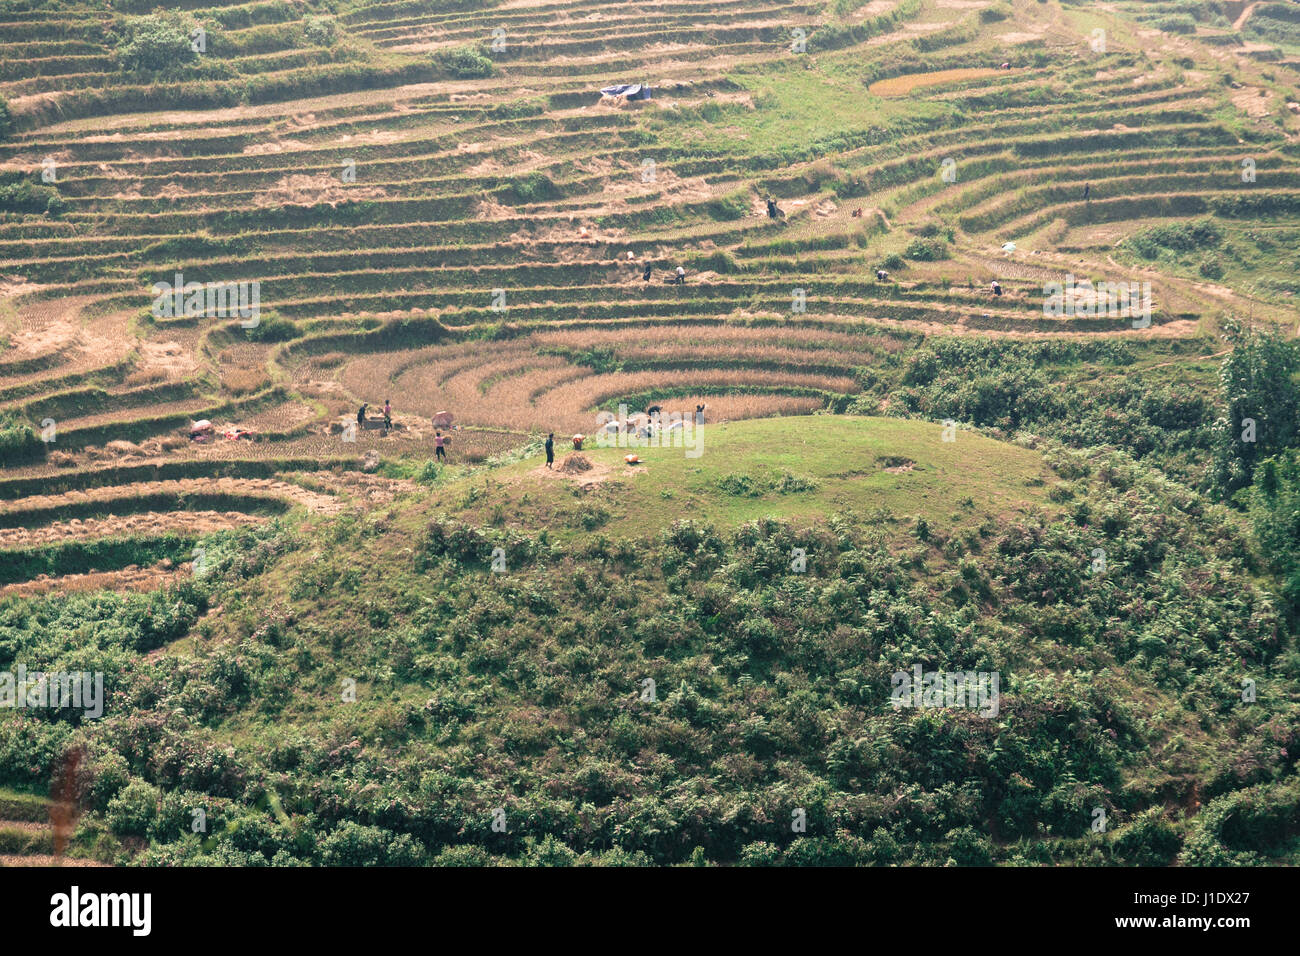 Farmers working in the rice terraces of Sa Pa (Sapa) in northern Vietnam, southeast Asia - Stock Image